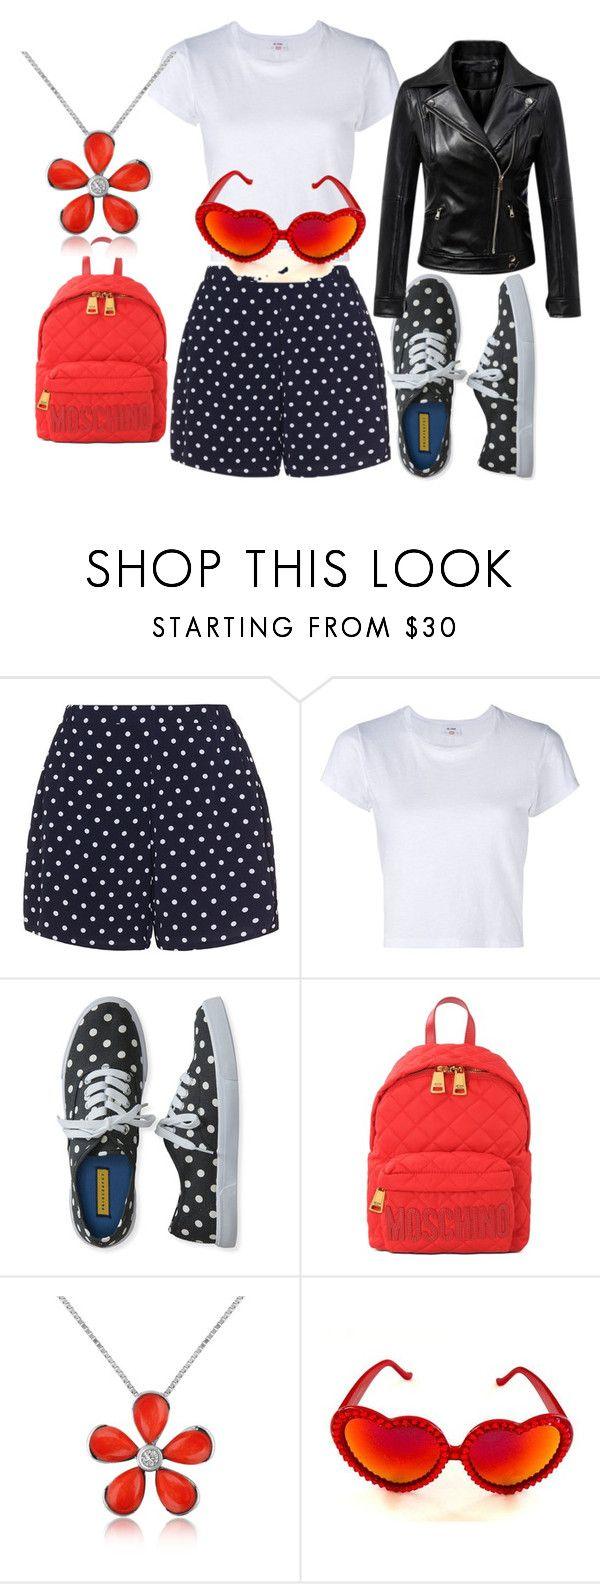 """""""queenet look"""" by queenet506 on Polyvore featuring Zizzi, RE/DONE, Aéropostale, Moschino, Del Gatto, Gasoline Glamour and Chicnova Fashion"""